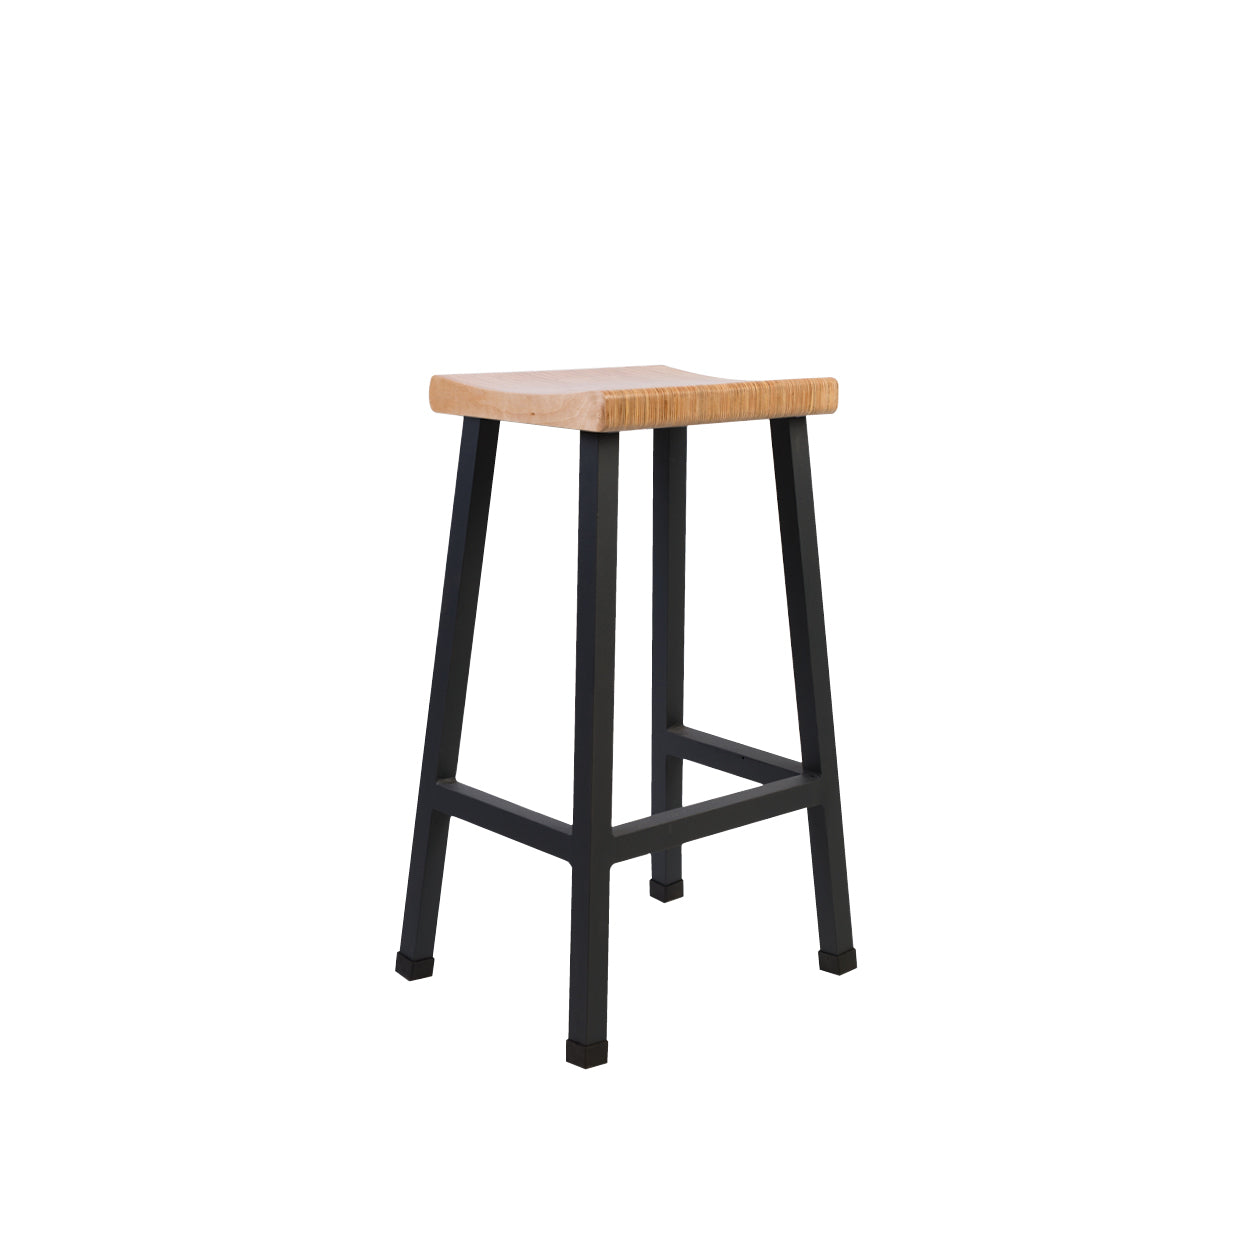 Hedcor Bar stool 001